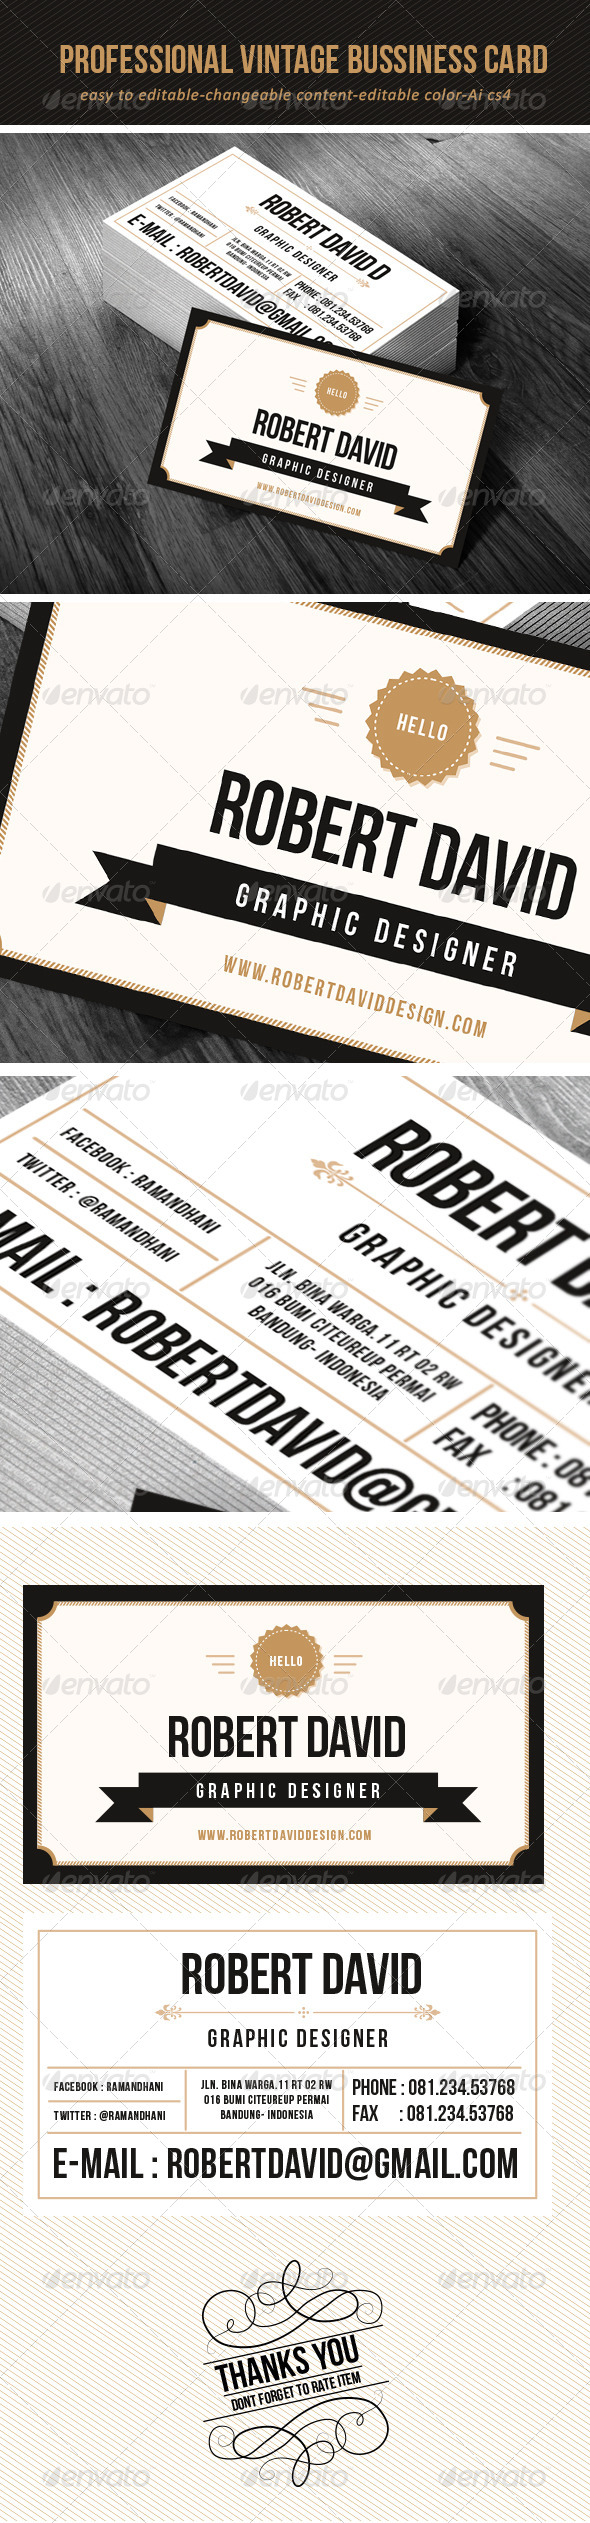 GraphicRiver Professional Vintage Bussiness Card 6772670